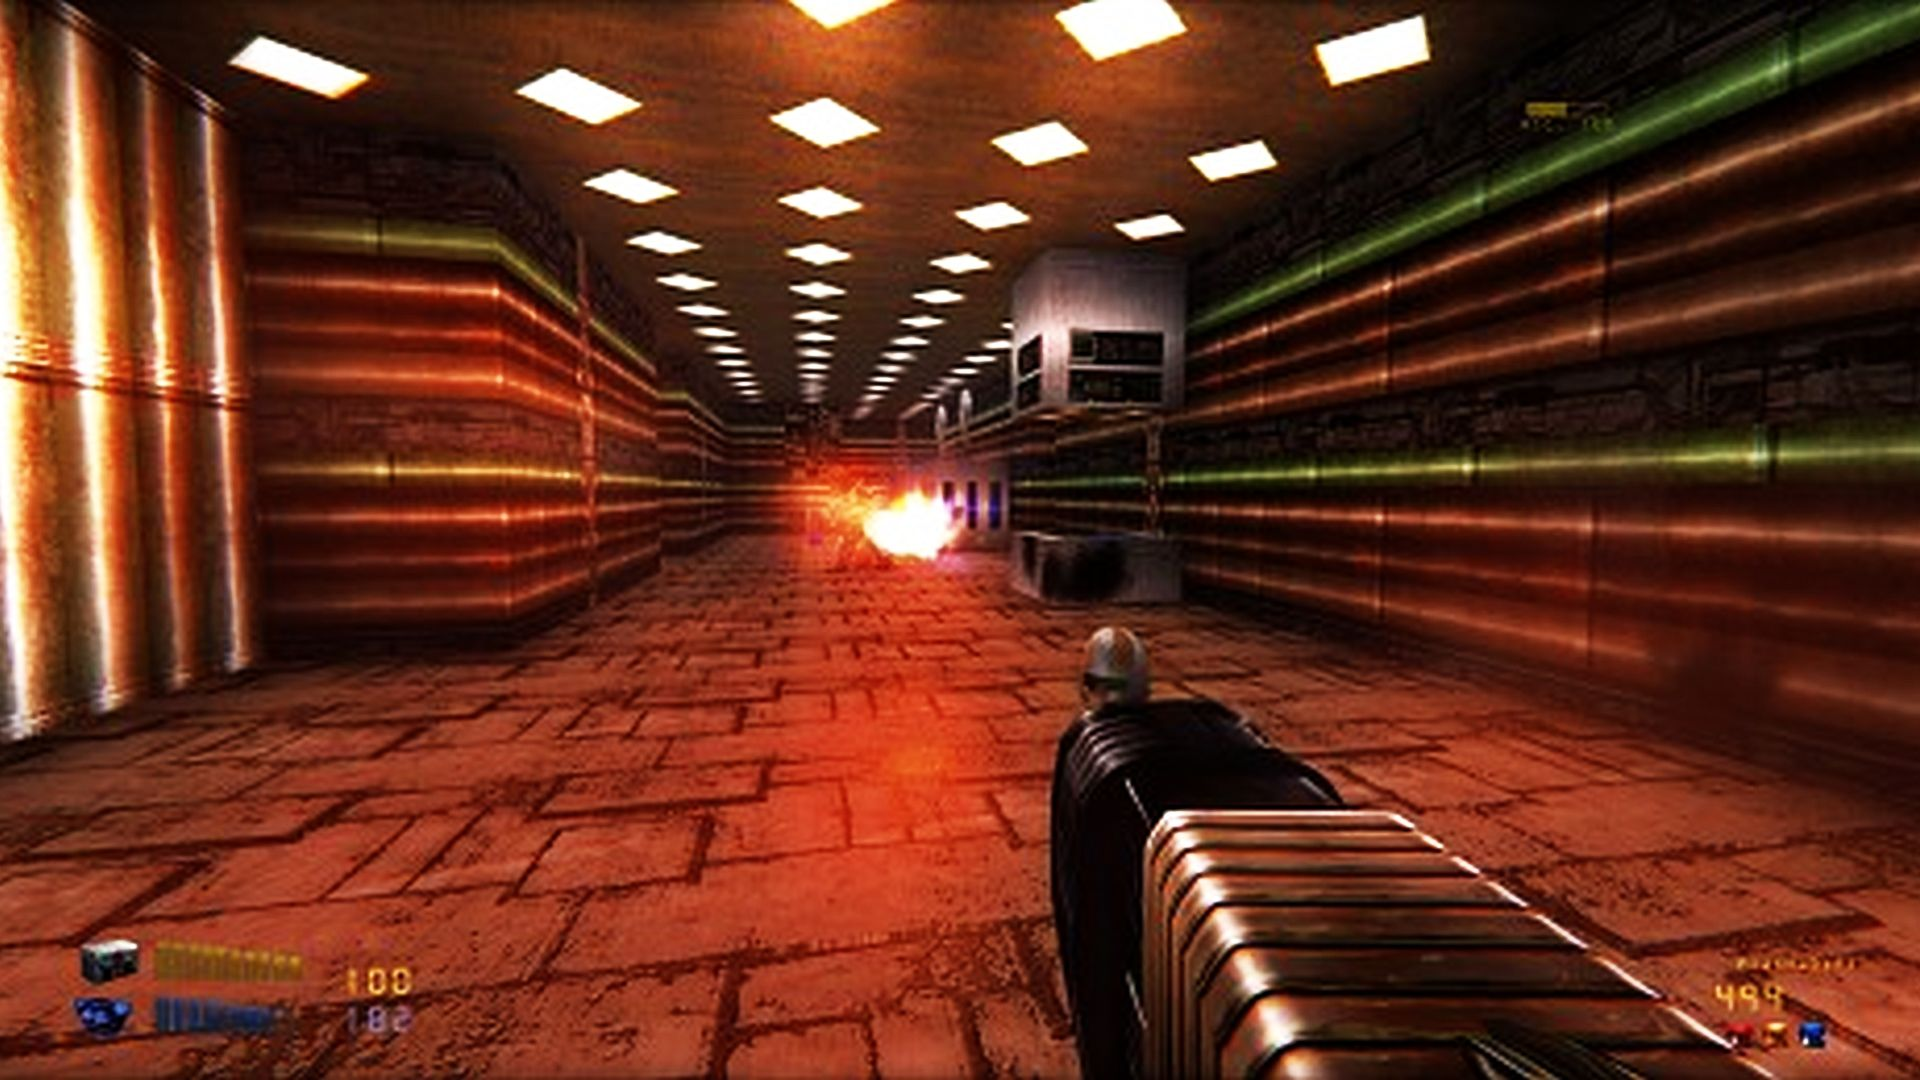 New 3d Hd Wallpapers For Pc Classic Doom Gets A 3d And Hd Remaster Courtesy Of The